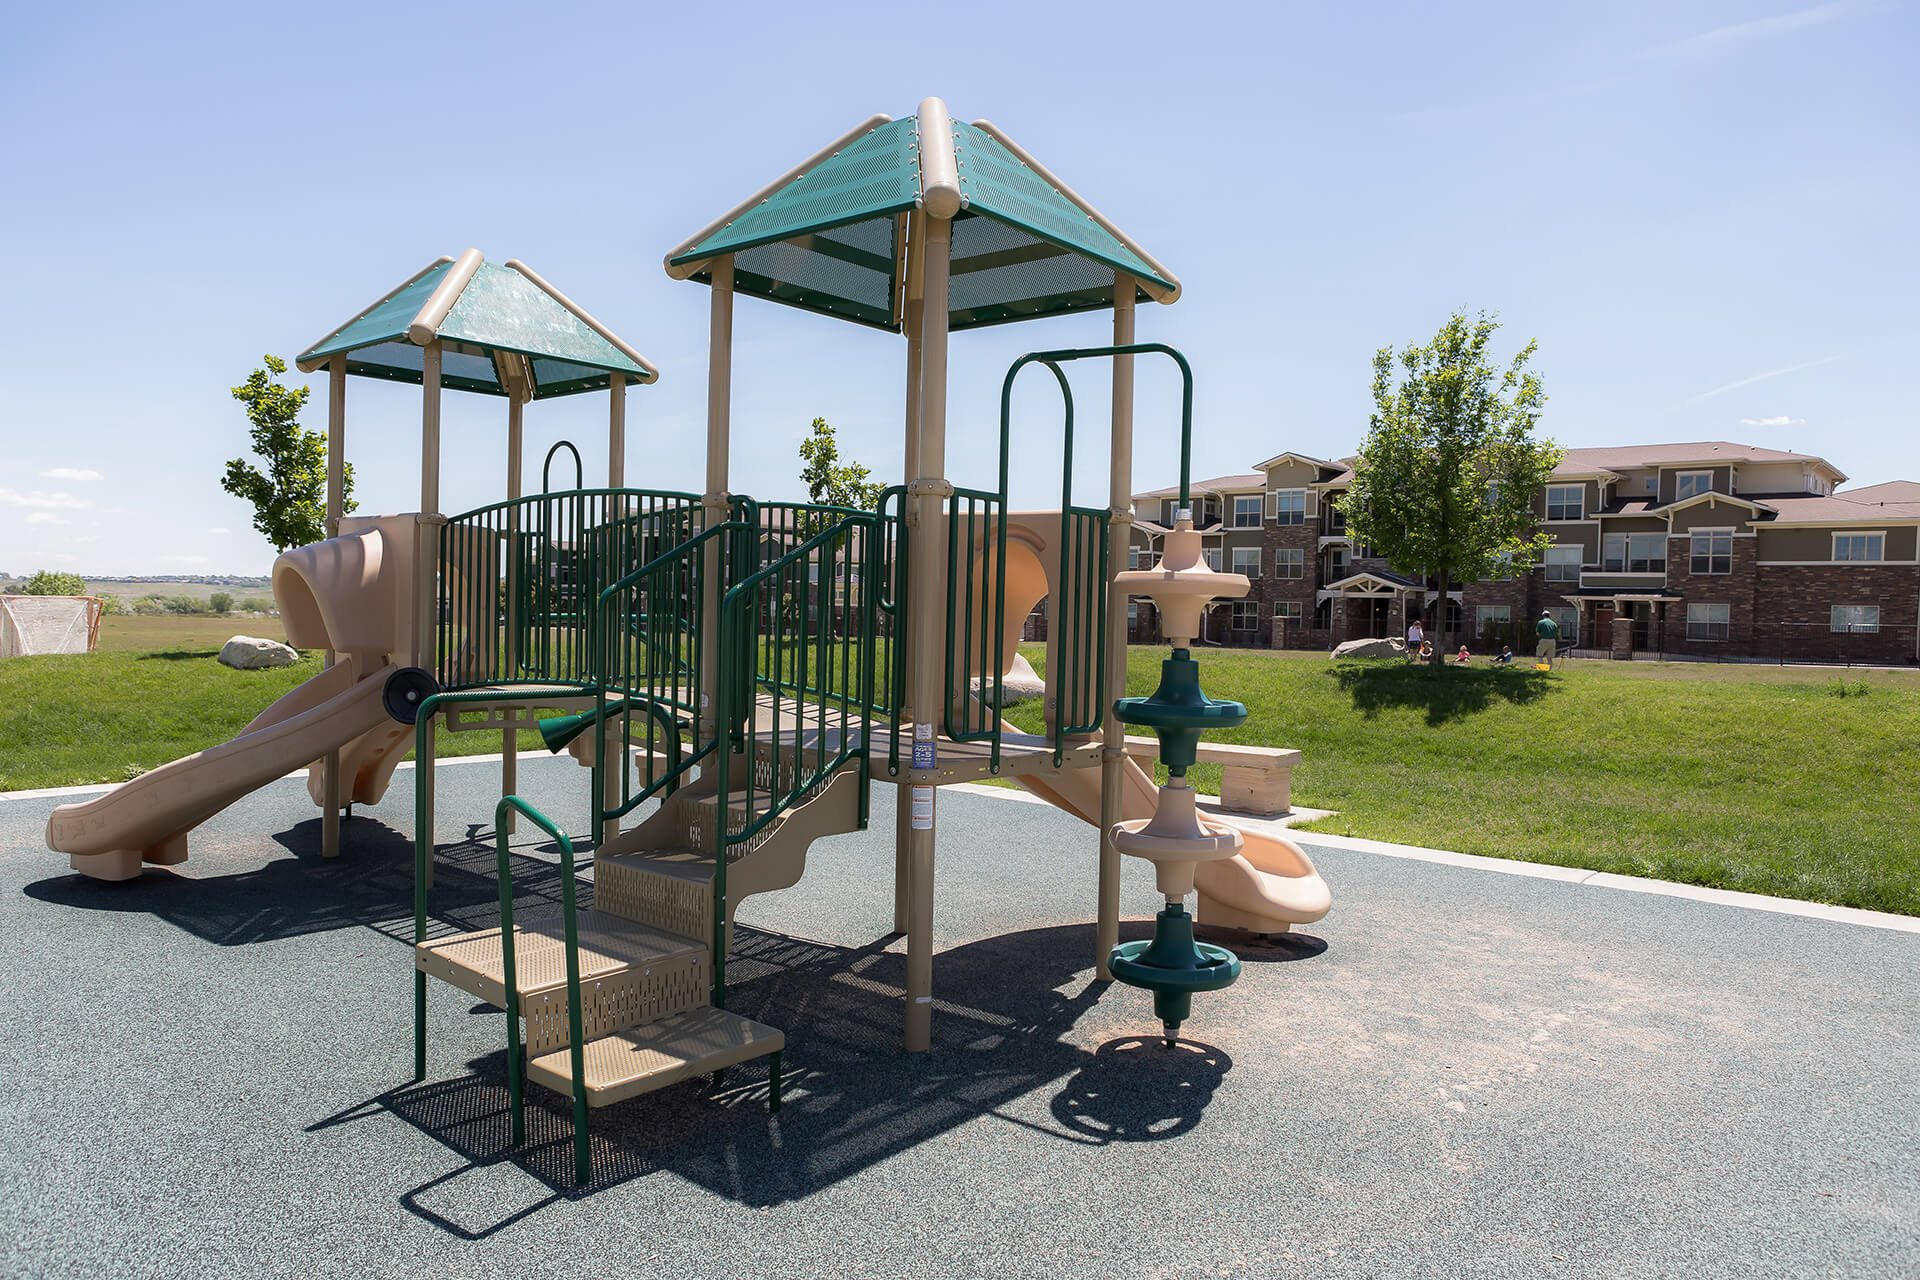 Amazing Outdoor Playground at Retreat at the Flatirons, 13780 Del Corso Way, Broomfield